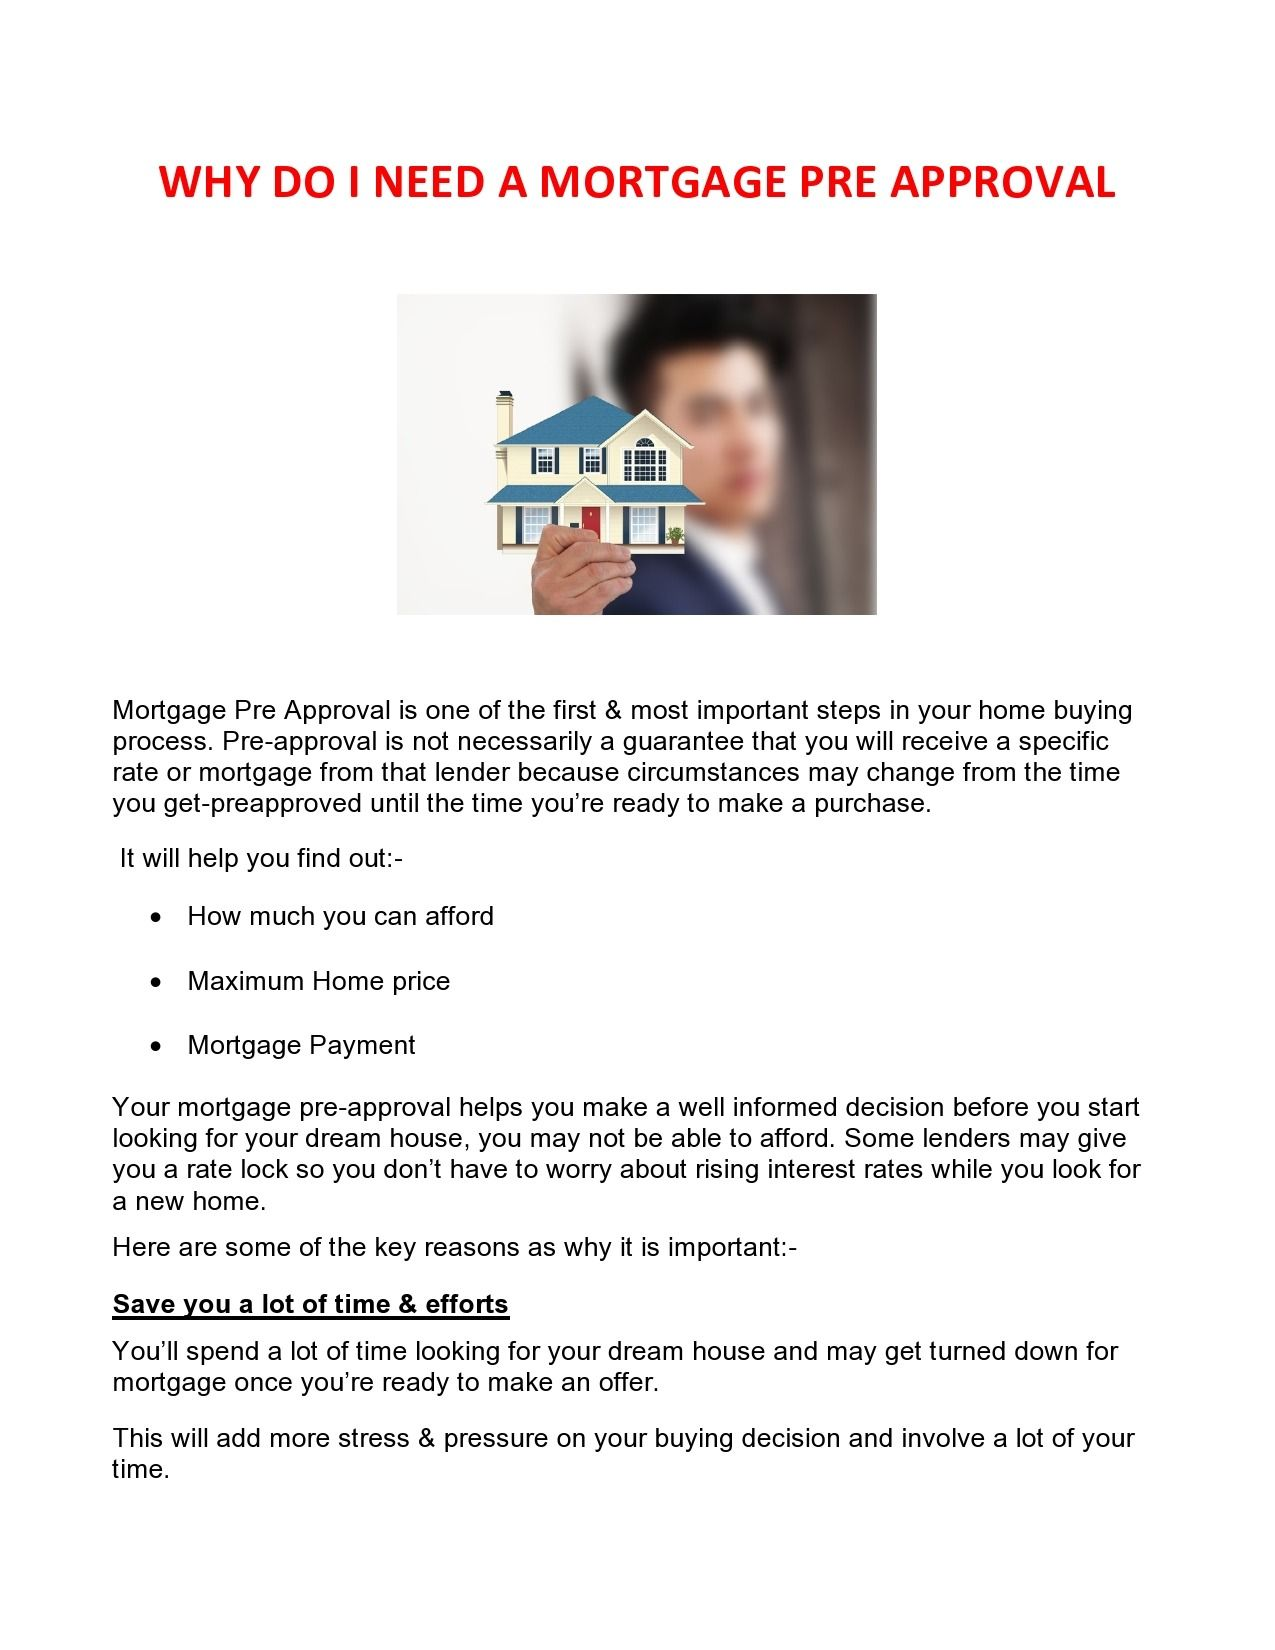 Why Do I Need Pre Approval First Time Home Buyers Home Buying Process Mortgage Loans